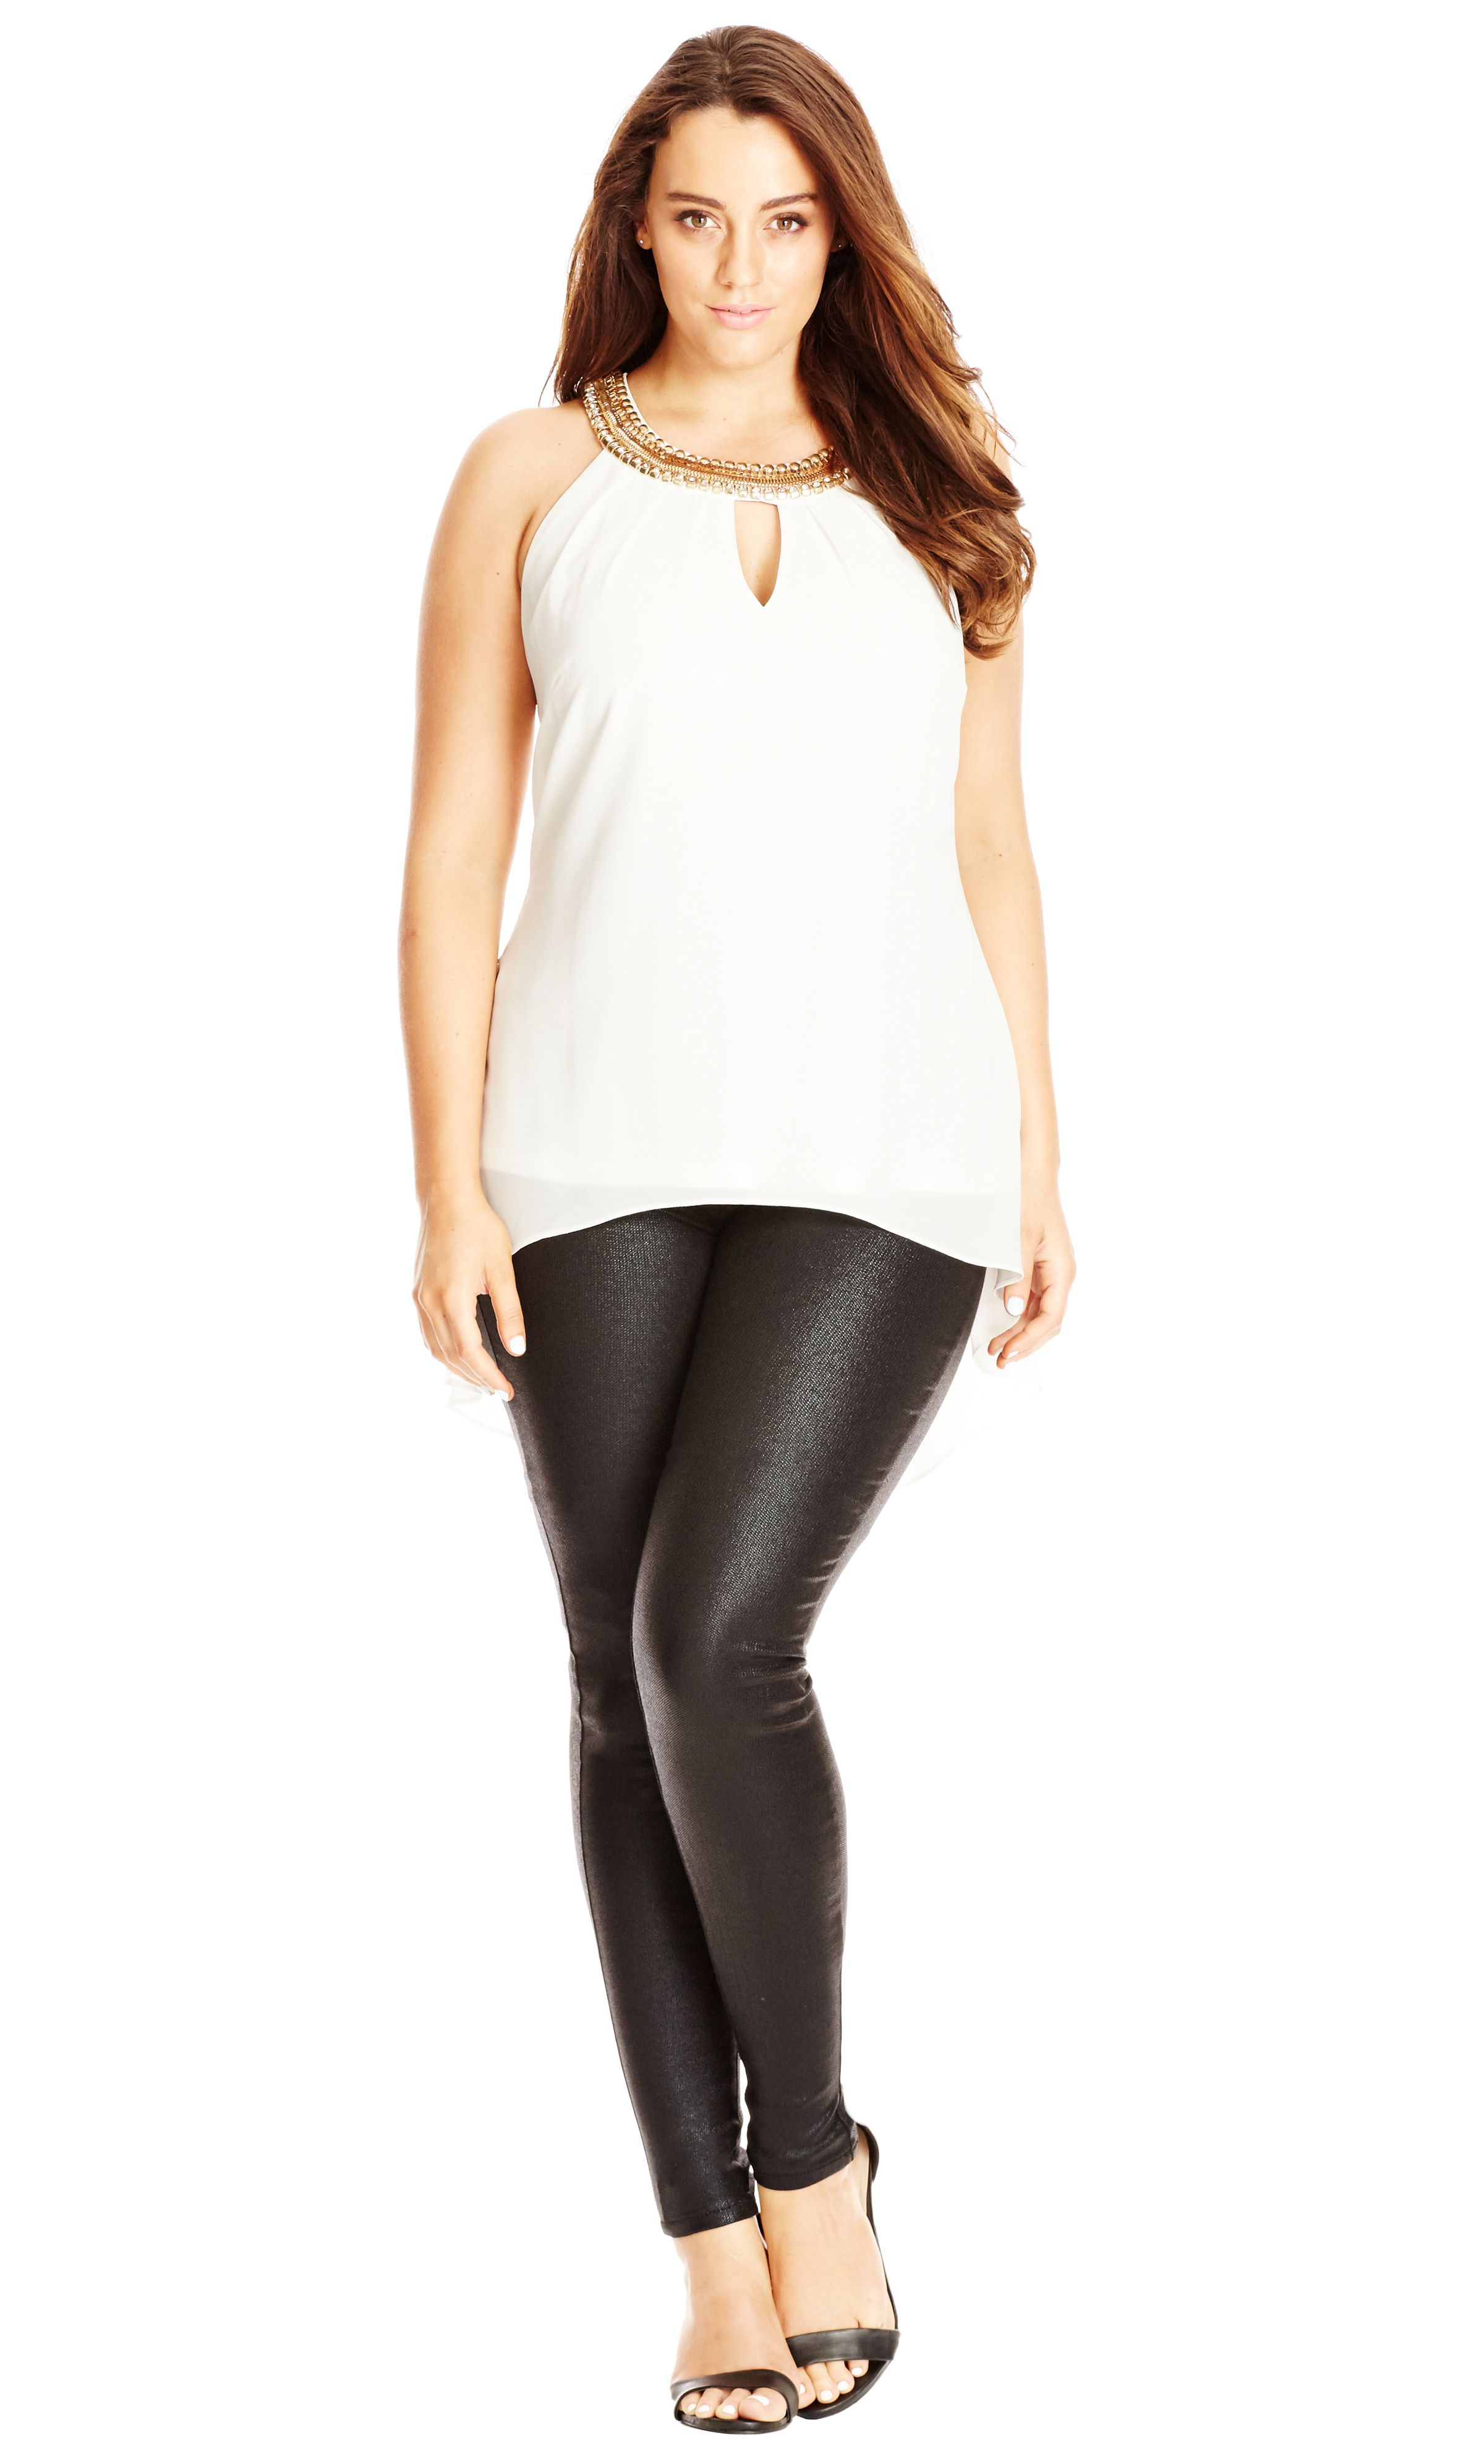 0cdcdd71744 City Chic Sultry Skinny Jeans - Women s Plus Size Fashion City Chic - City  Chic Your Leading Plus Size Fashion Destination  citychic  citychiconline  ...